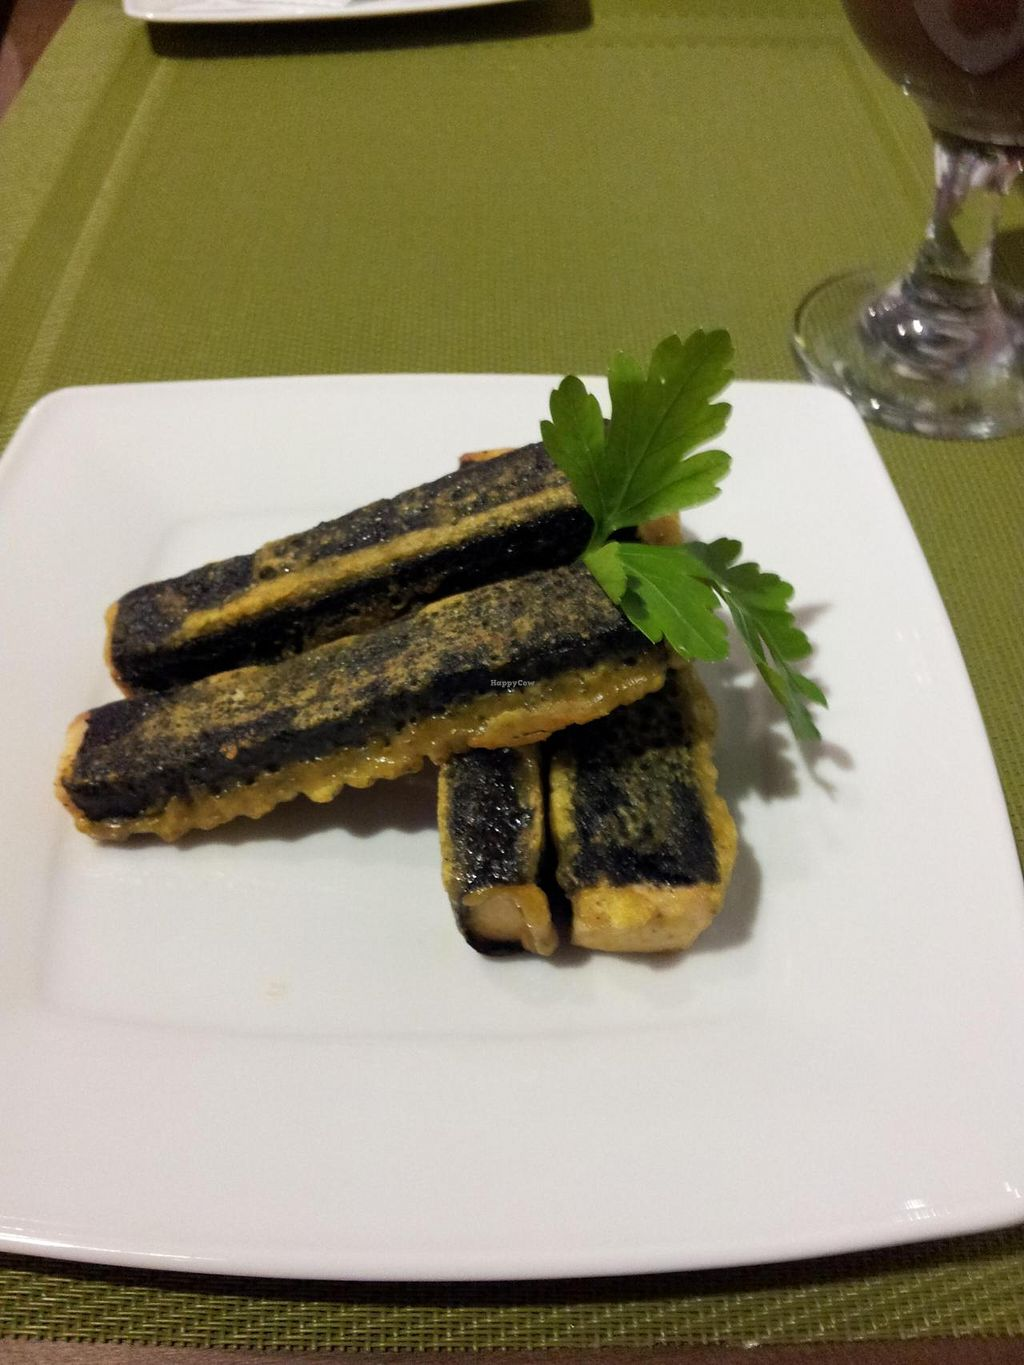 """Photo of Green  by <a href=""""/members/profile/derevo"""">derevo</a> <br/>tofu 'fish sticks' <br/> May 14, 2014  - <a href='/contact/abuse/image/45876/70004'>Report</a>"""